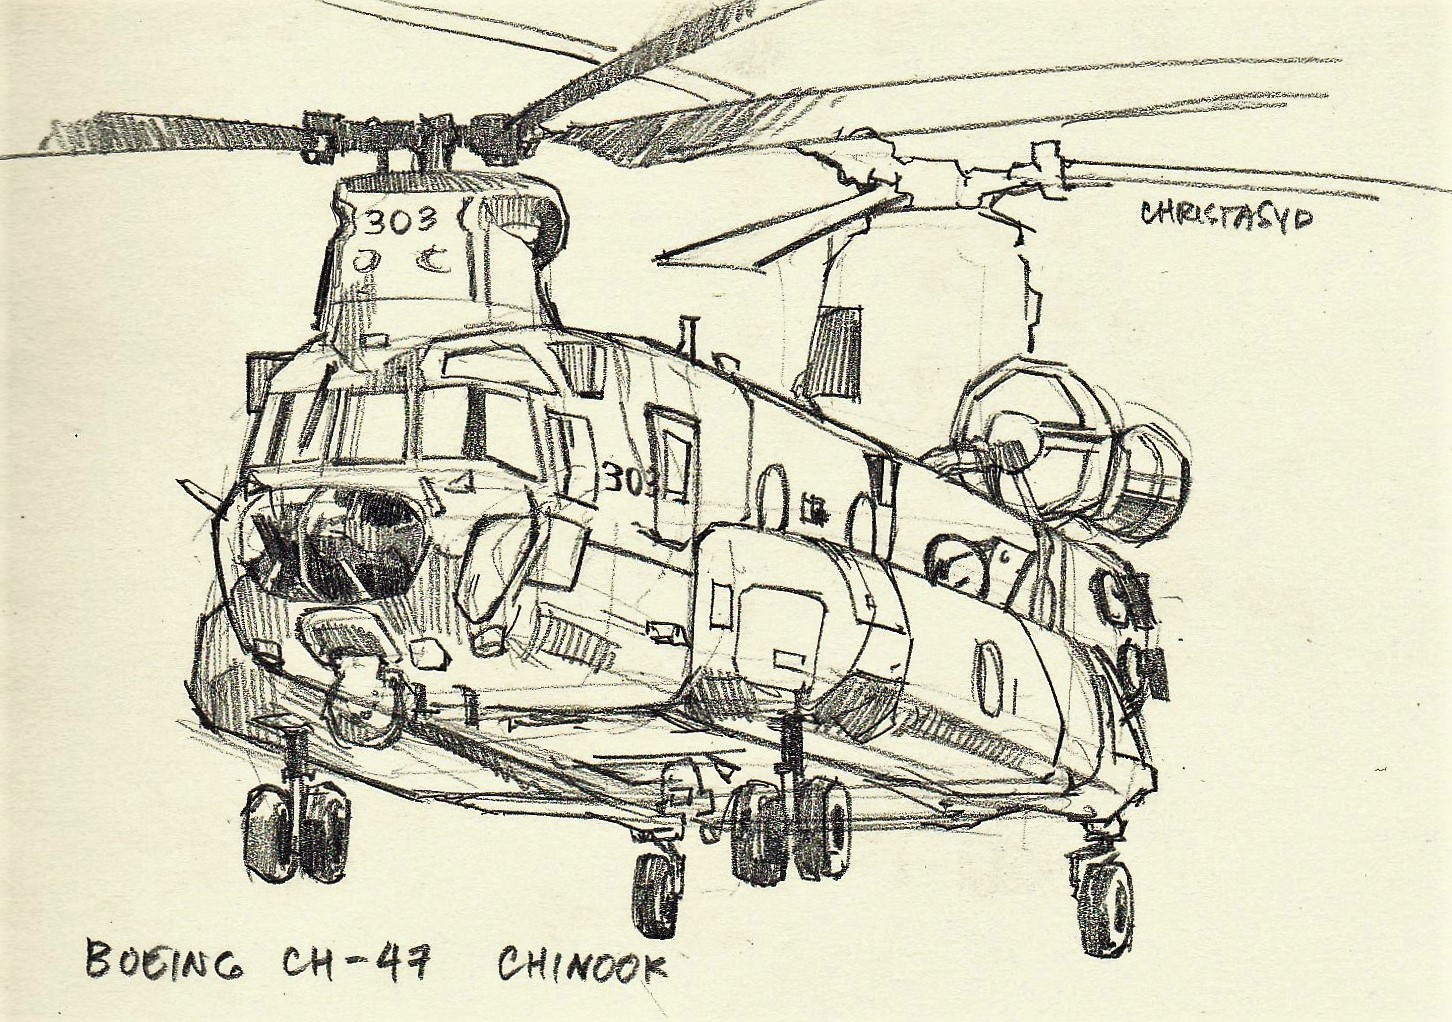 hight resolution of boeing ch 47 chinook study